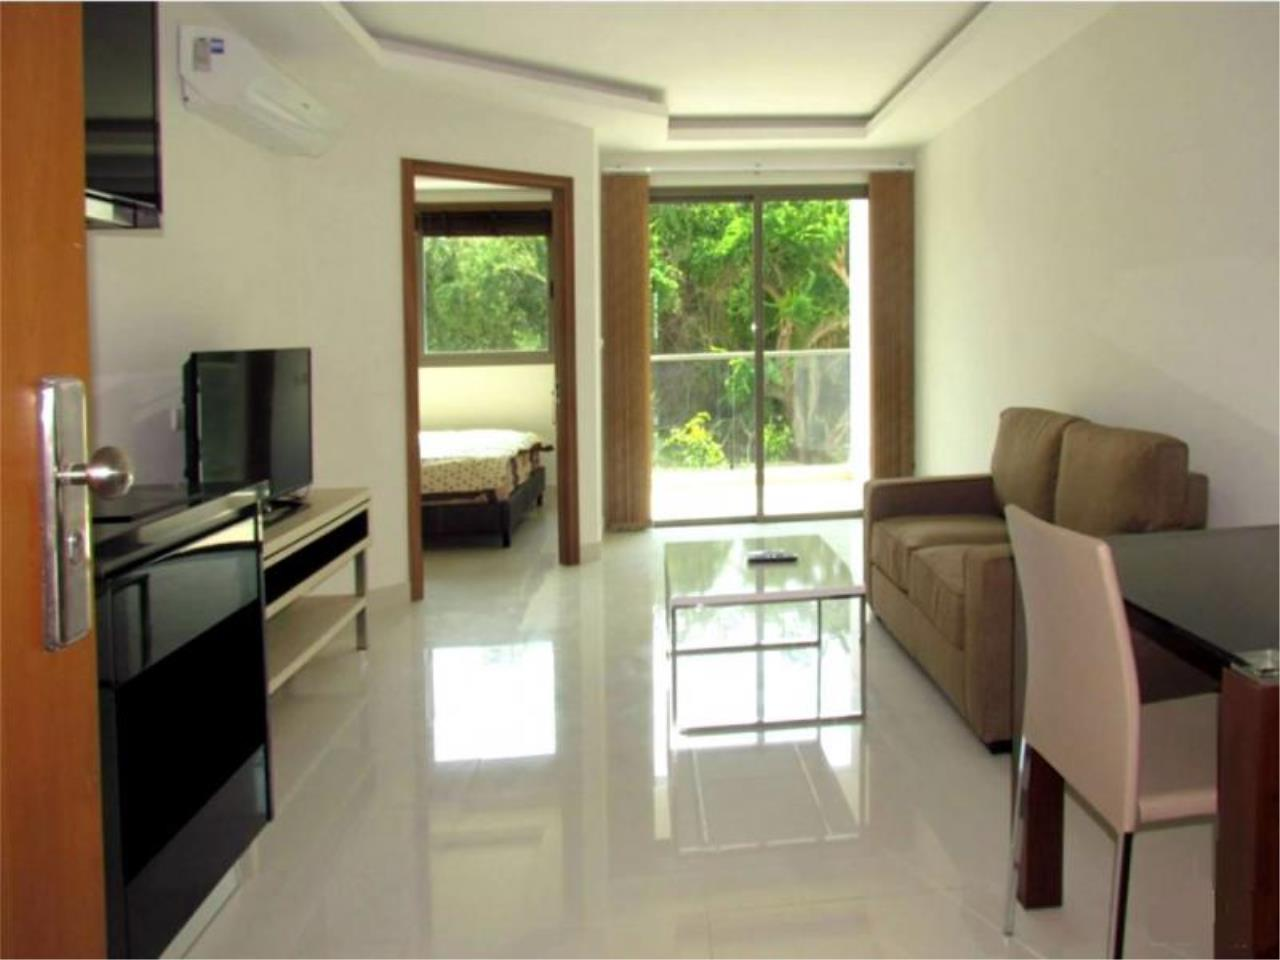 RE/MAX Town & Country Property Agency's Condo for sale in North Pattaya 1